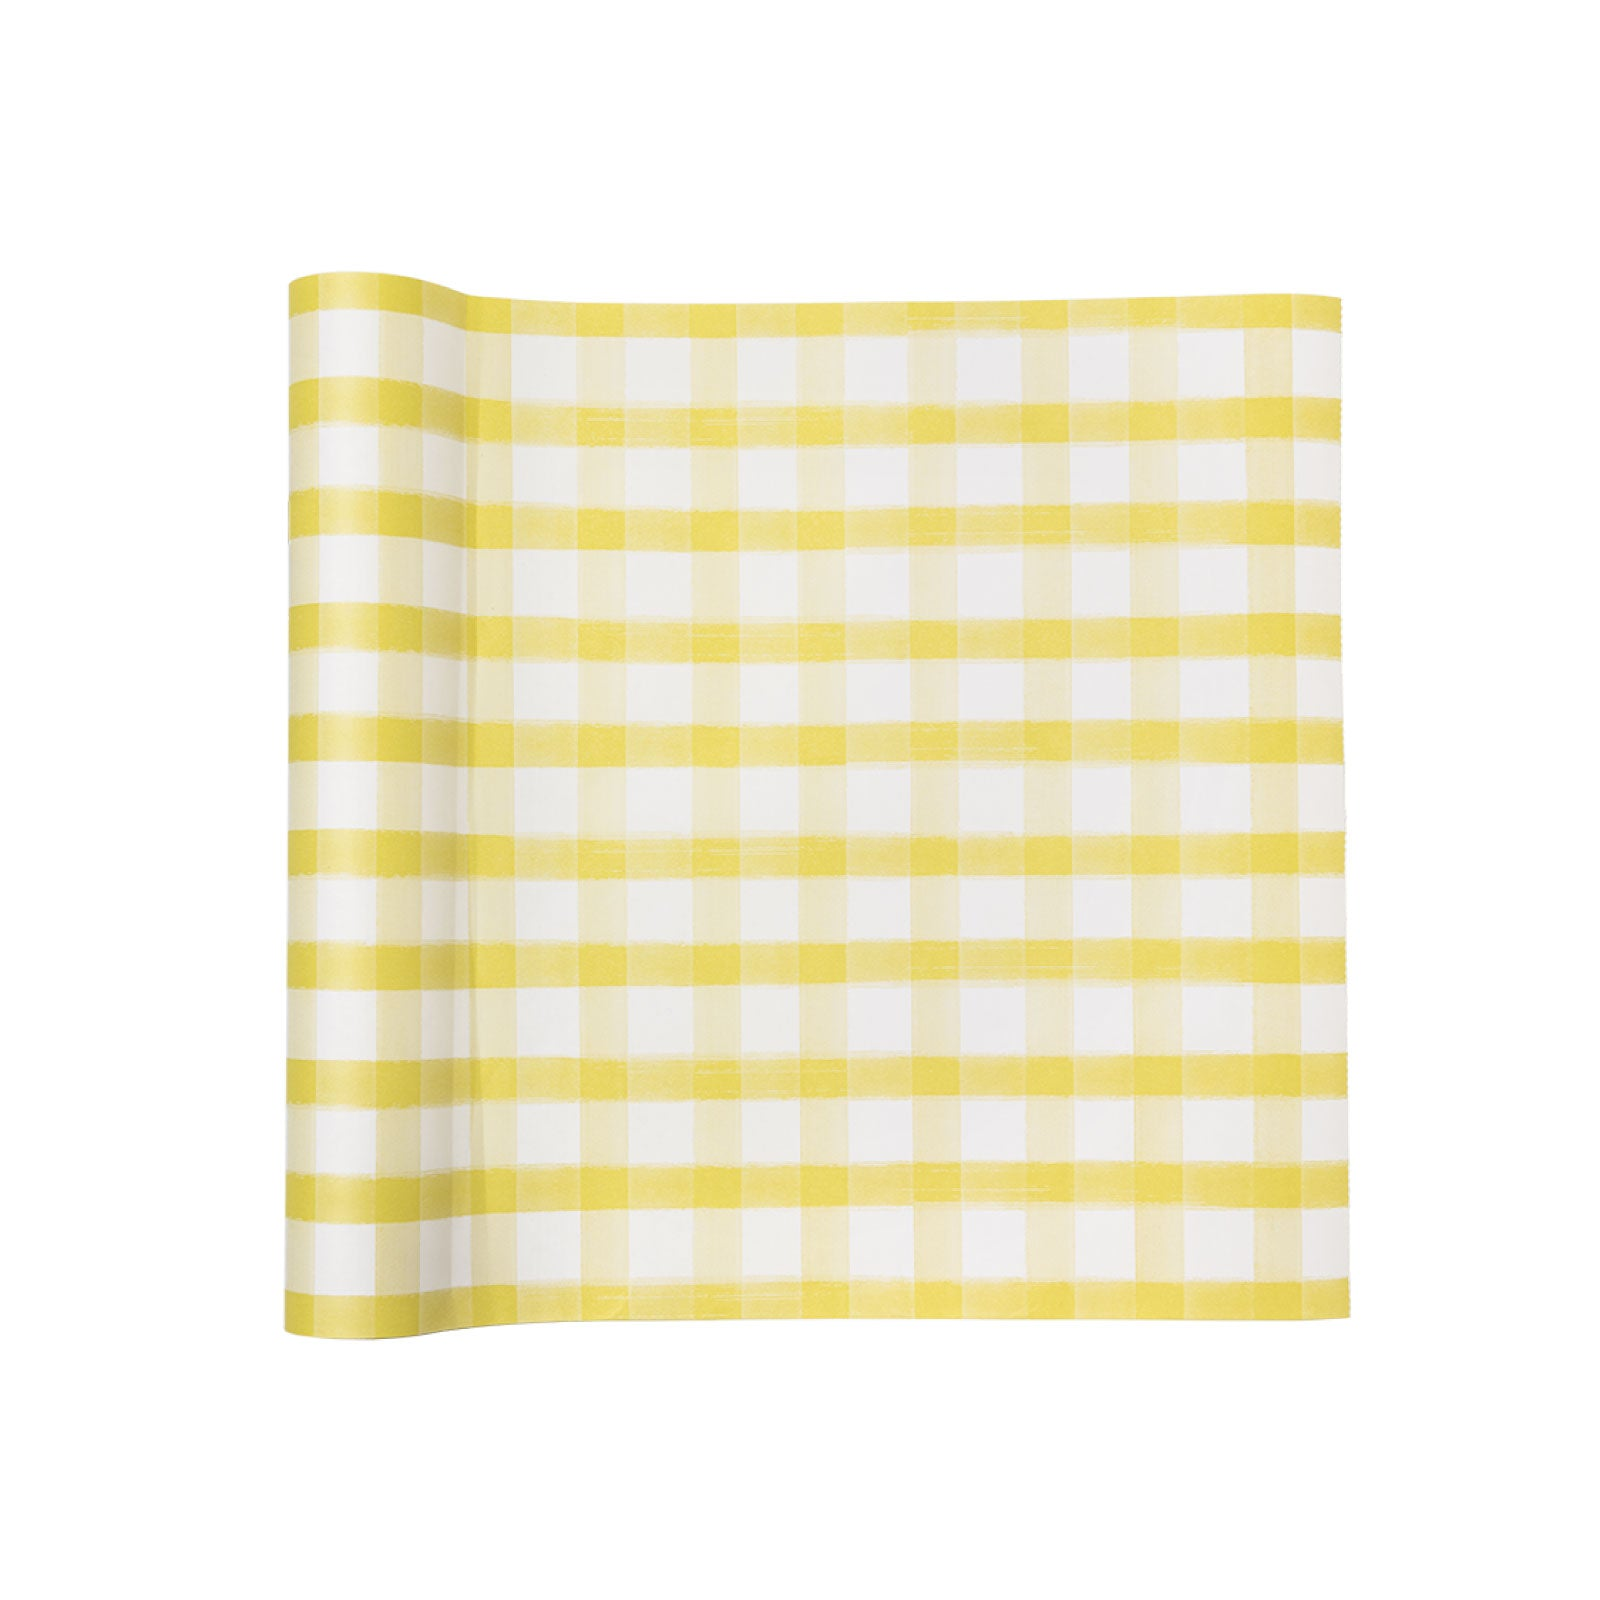 Lemon Lime Picnic Check Paper Table Runner